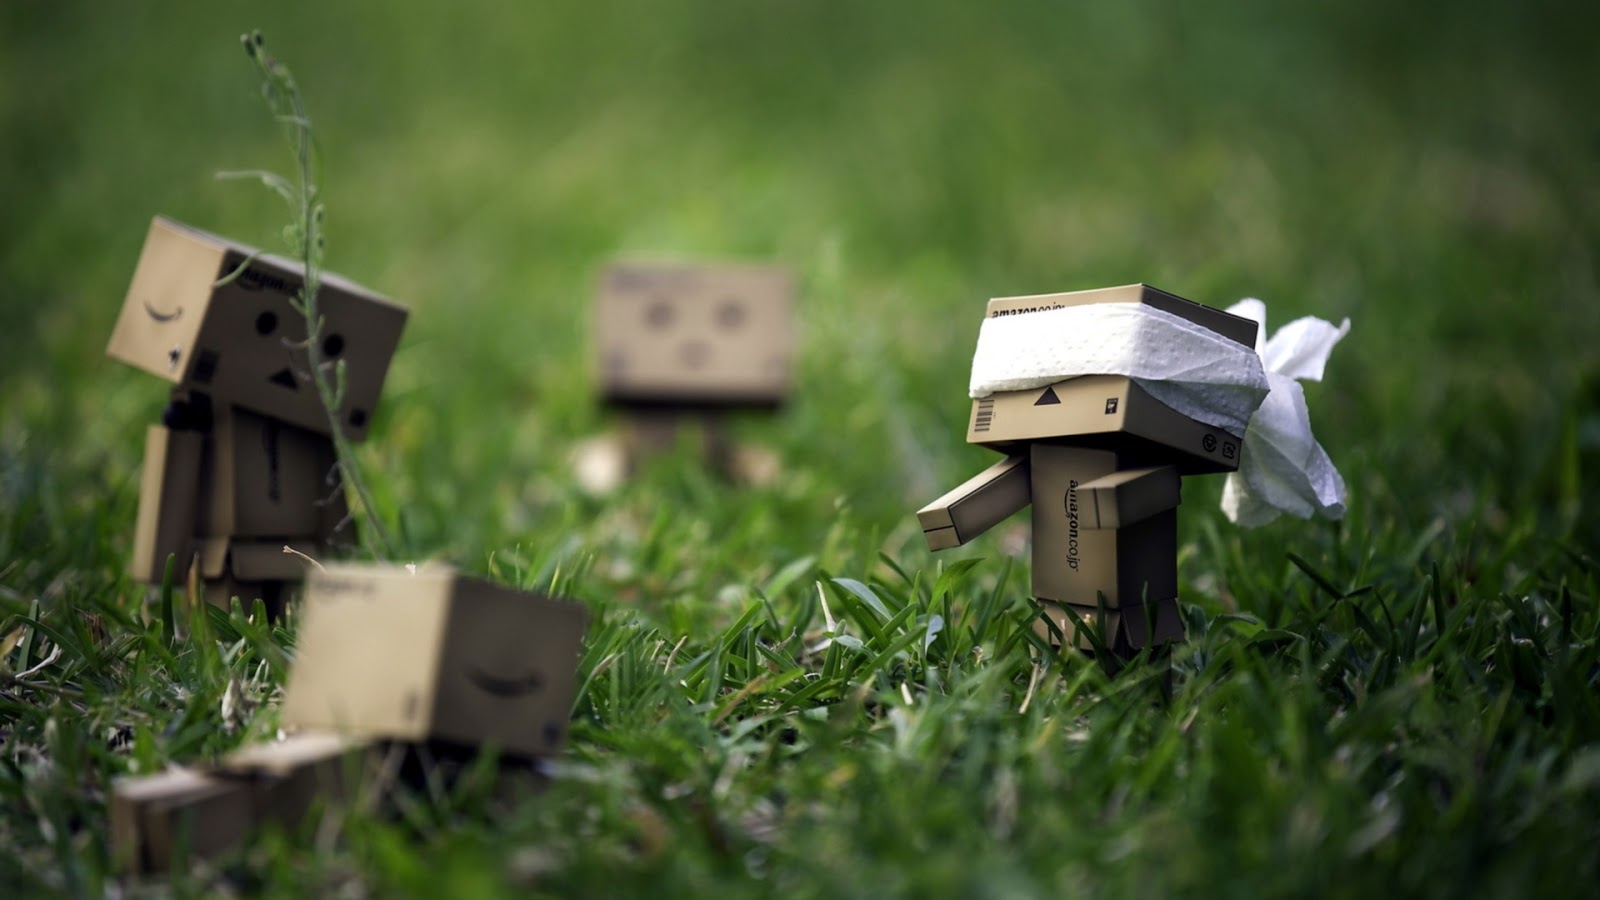 danboard wallpapers 28 hd - photo #39